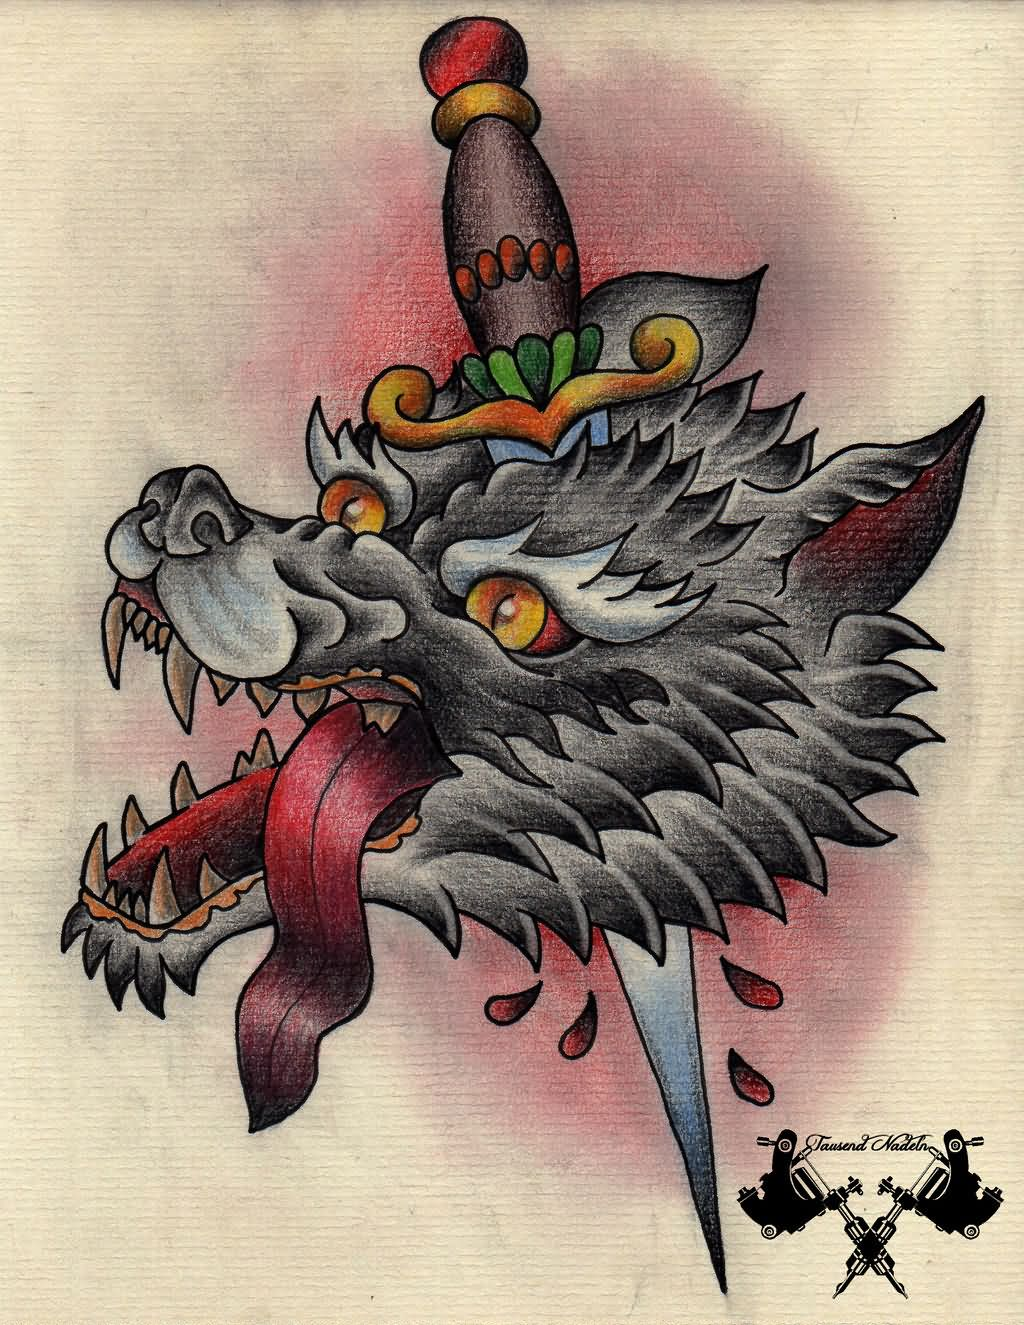 35 Knife And Dagger Tattoo Designs